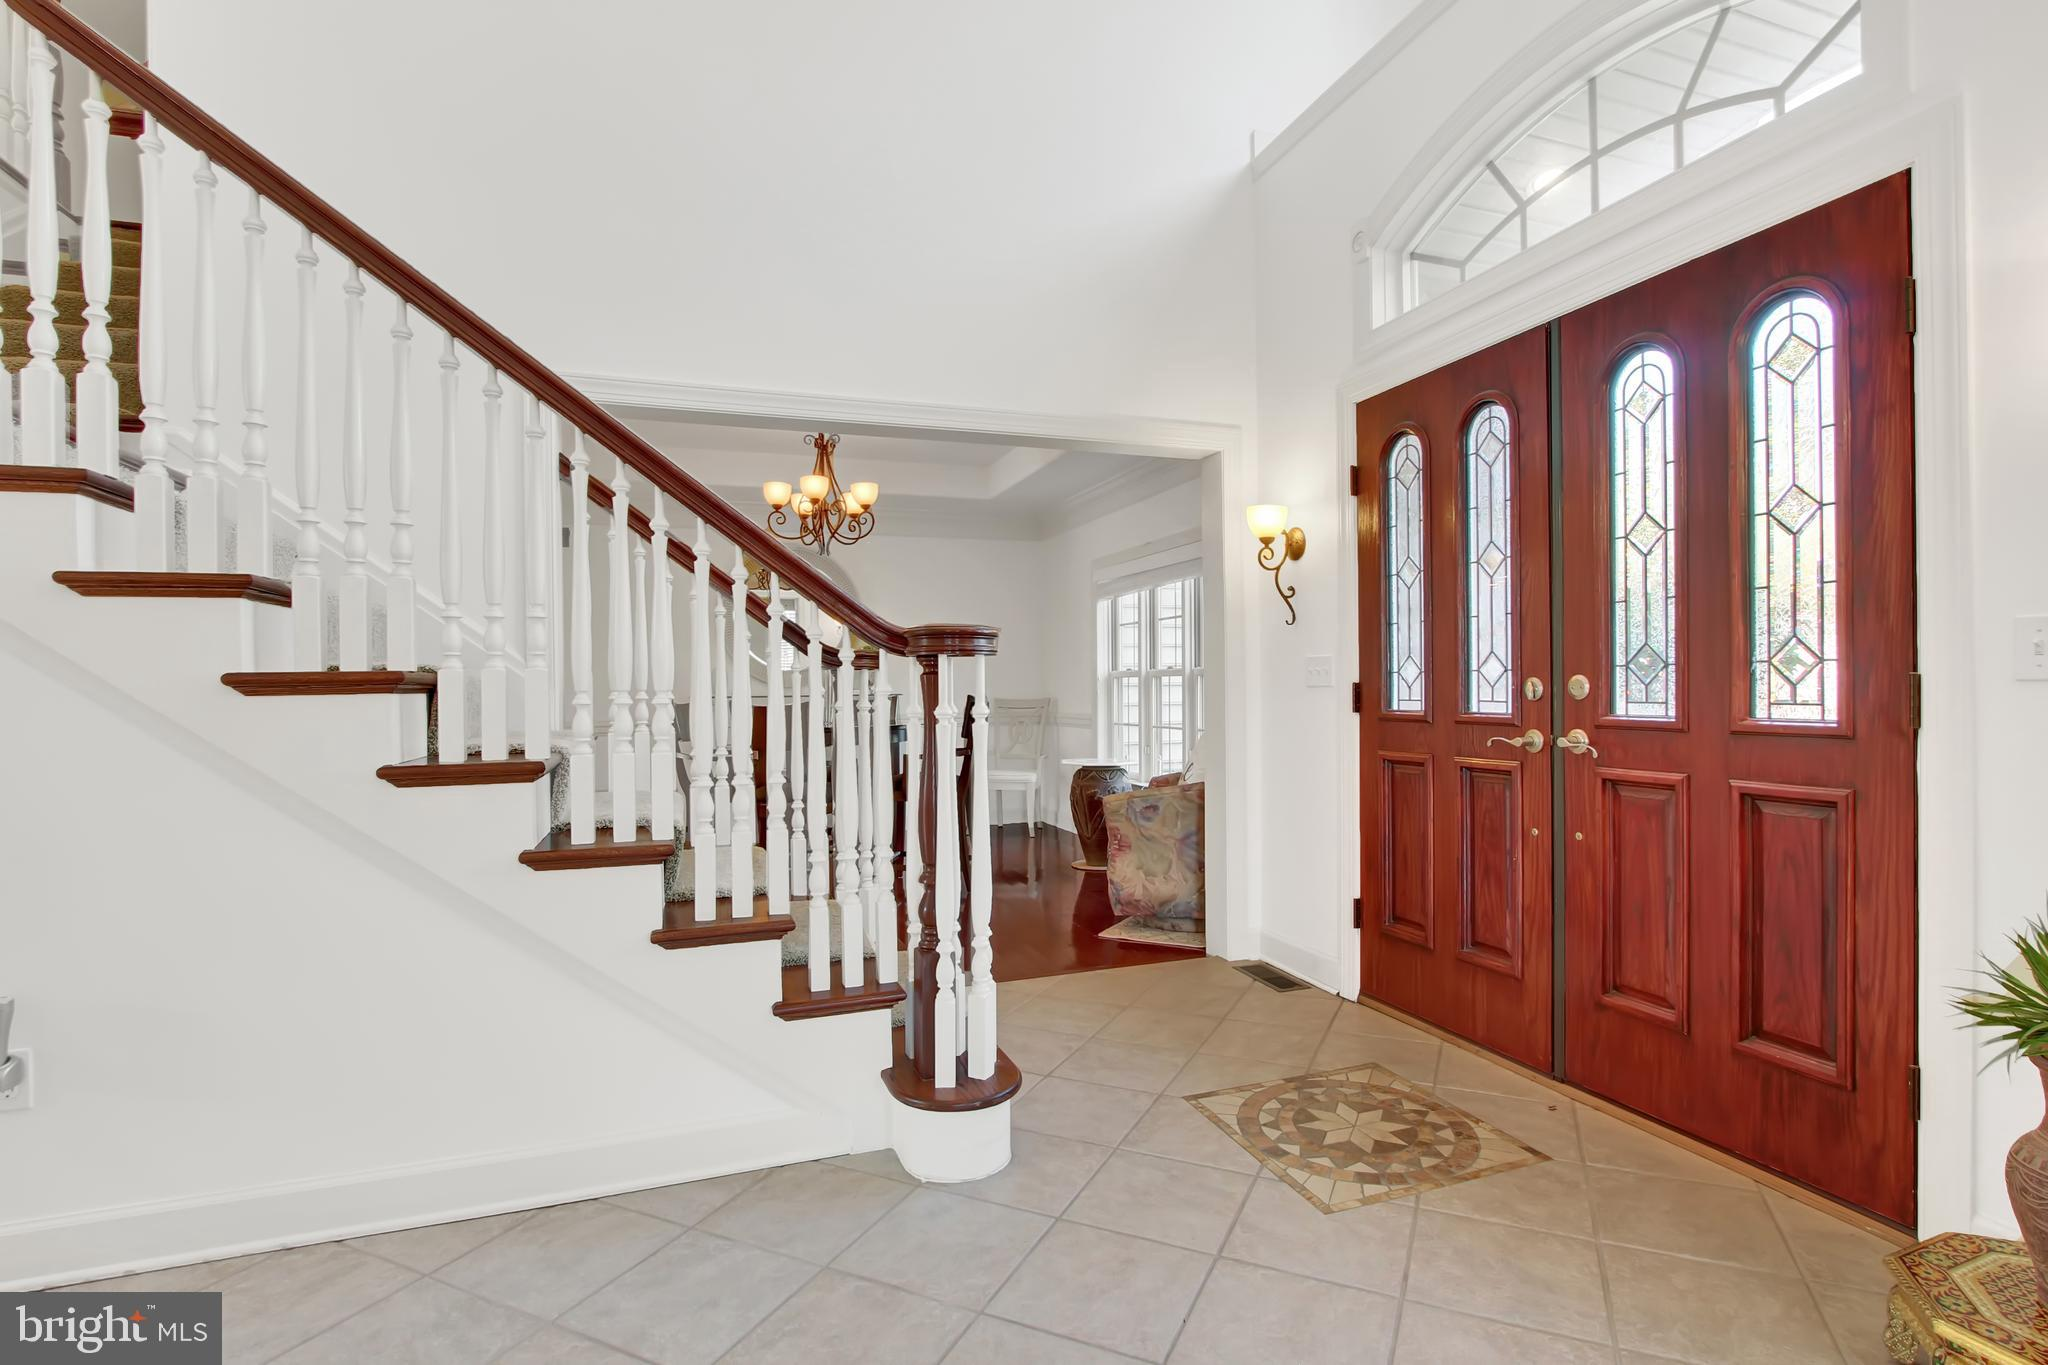 Grand entryway with two story vaulted ceilings